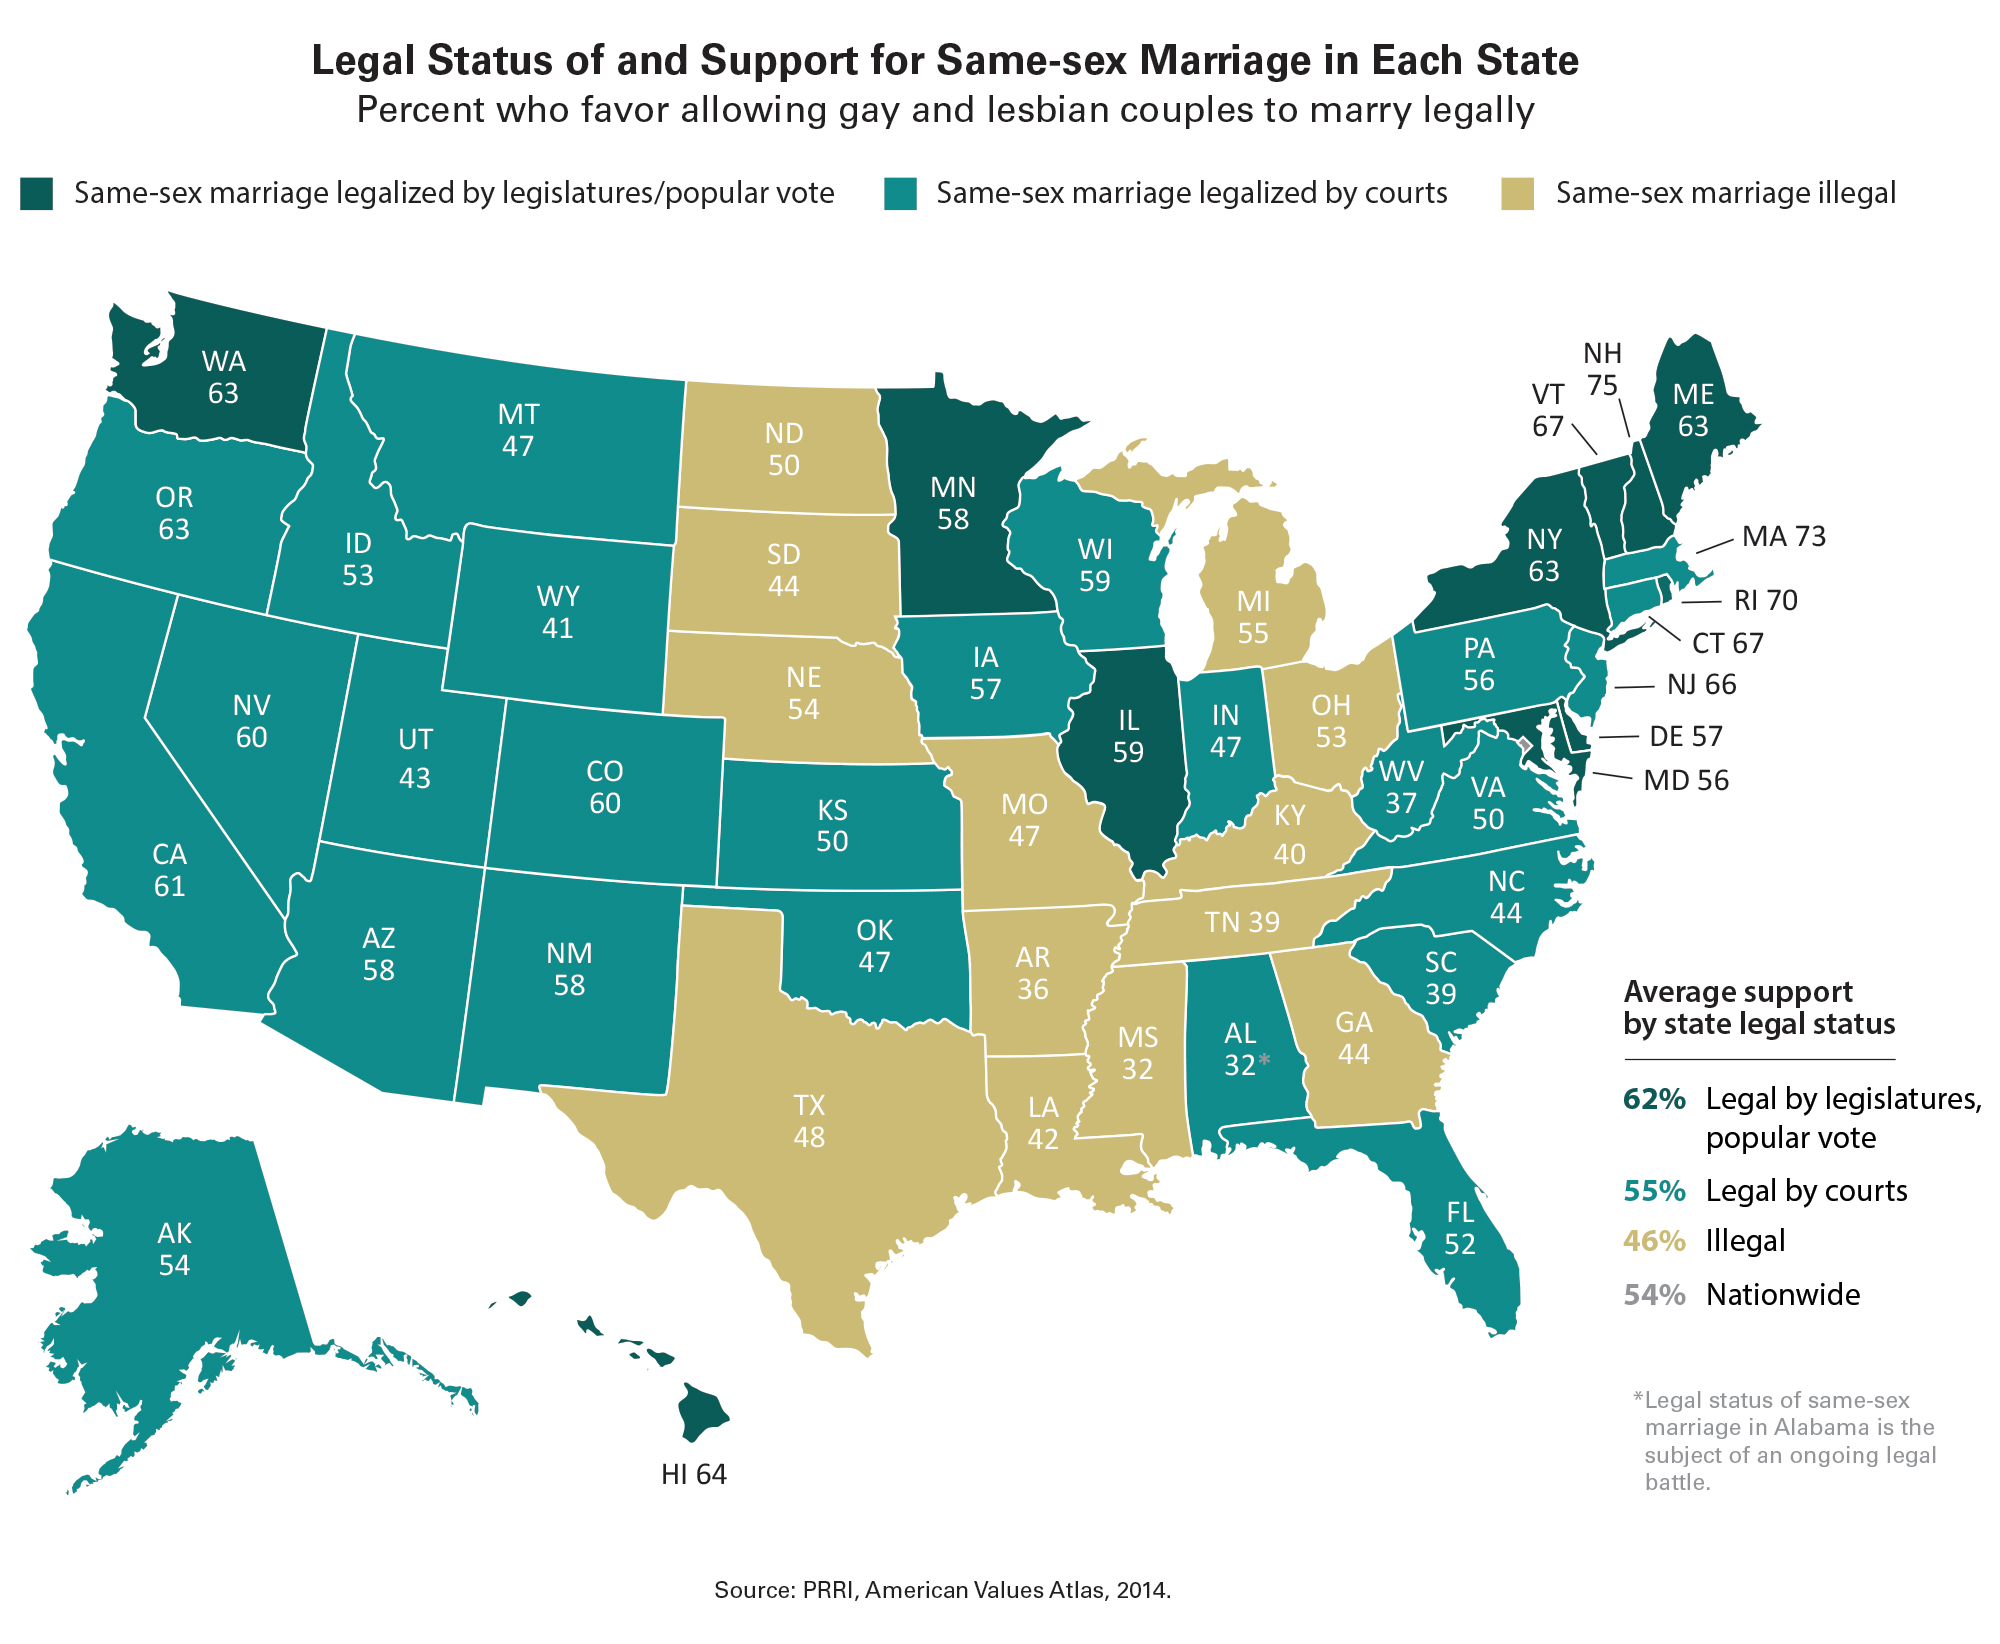 Why homosexual marriage should not be legalized